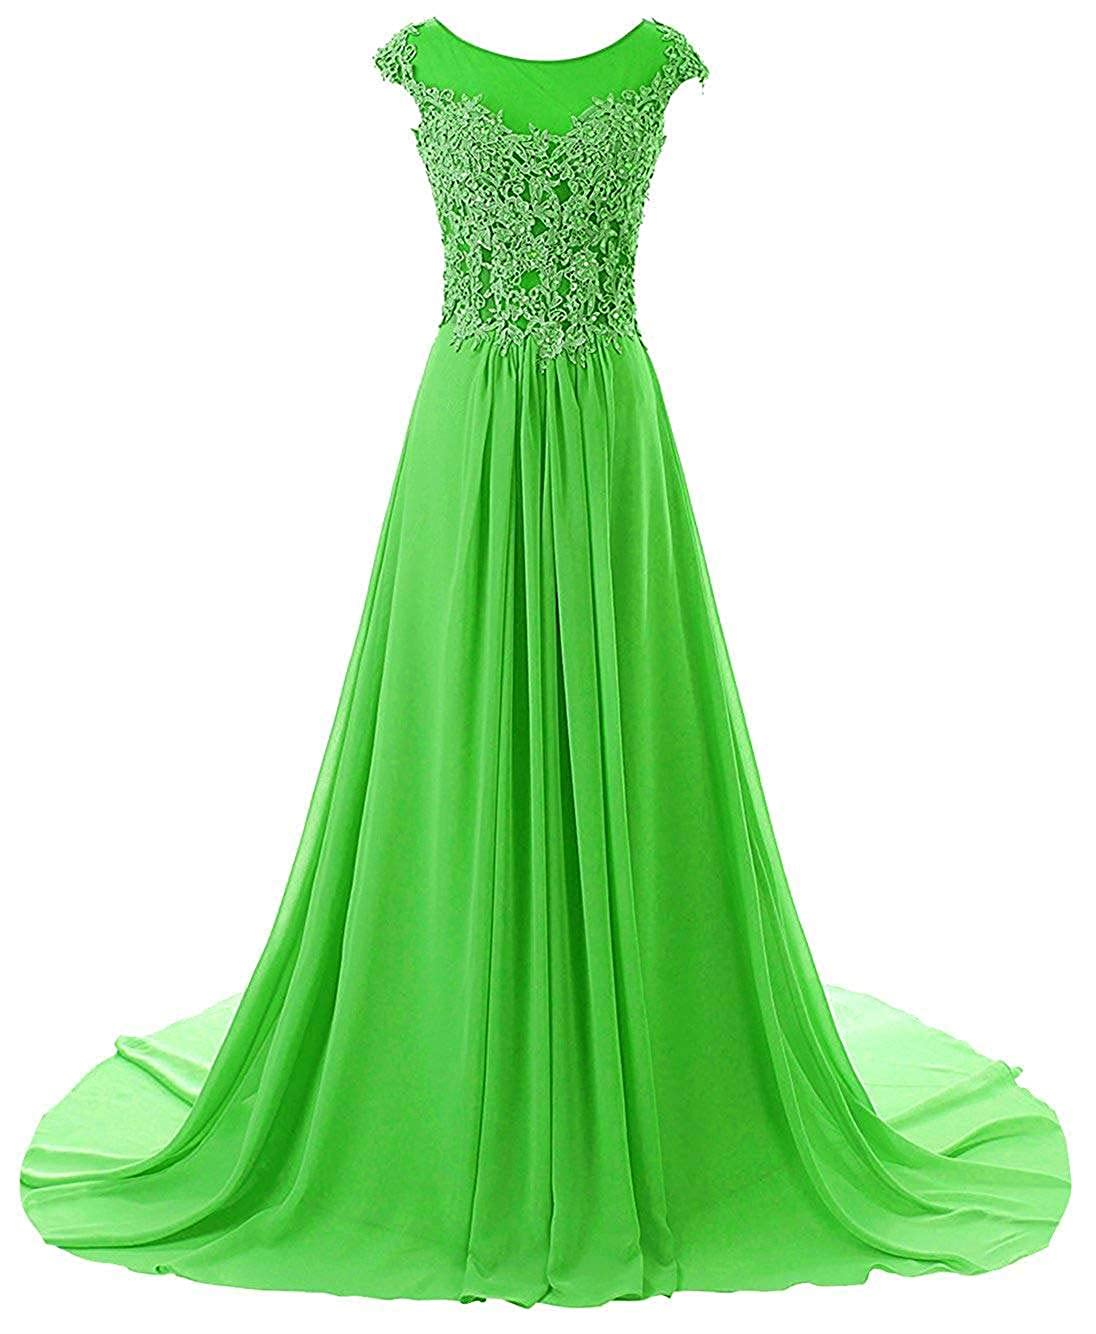 Emerald Wanshaqin Women's Aline Lace Appliques Evening Party Cocktail Dresses Bridesmaid Gowns Prom Formal Dresses for Events Party